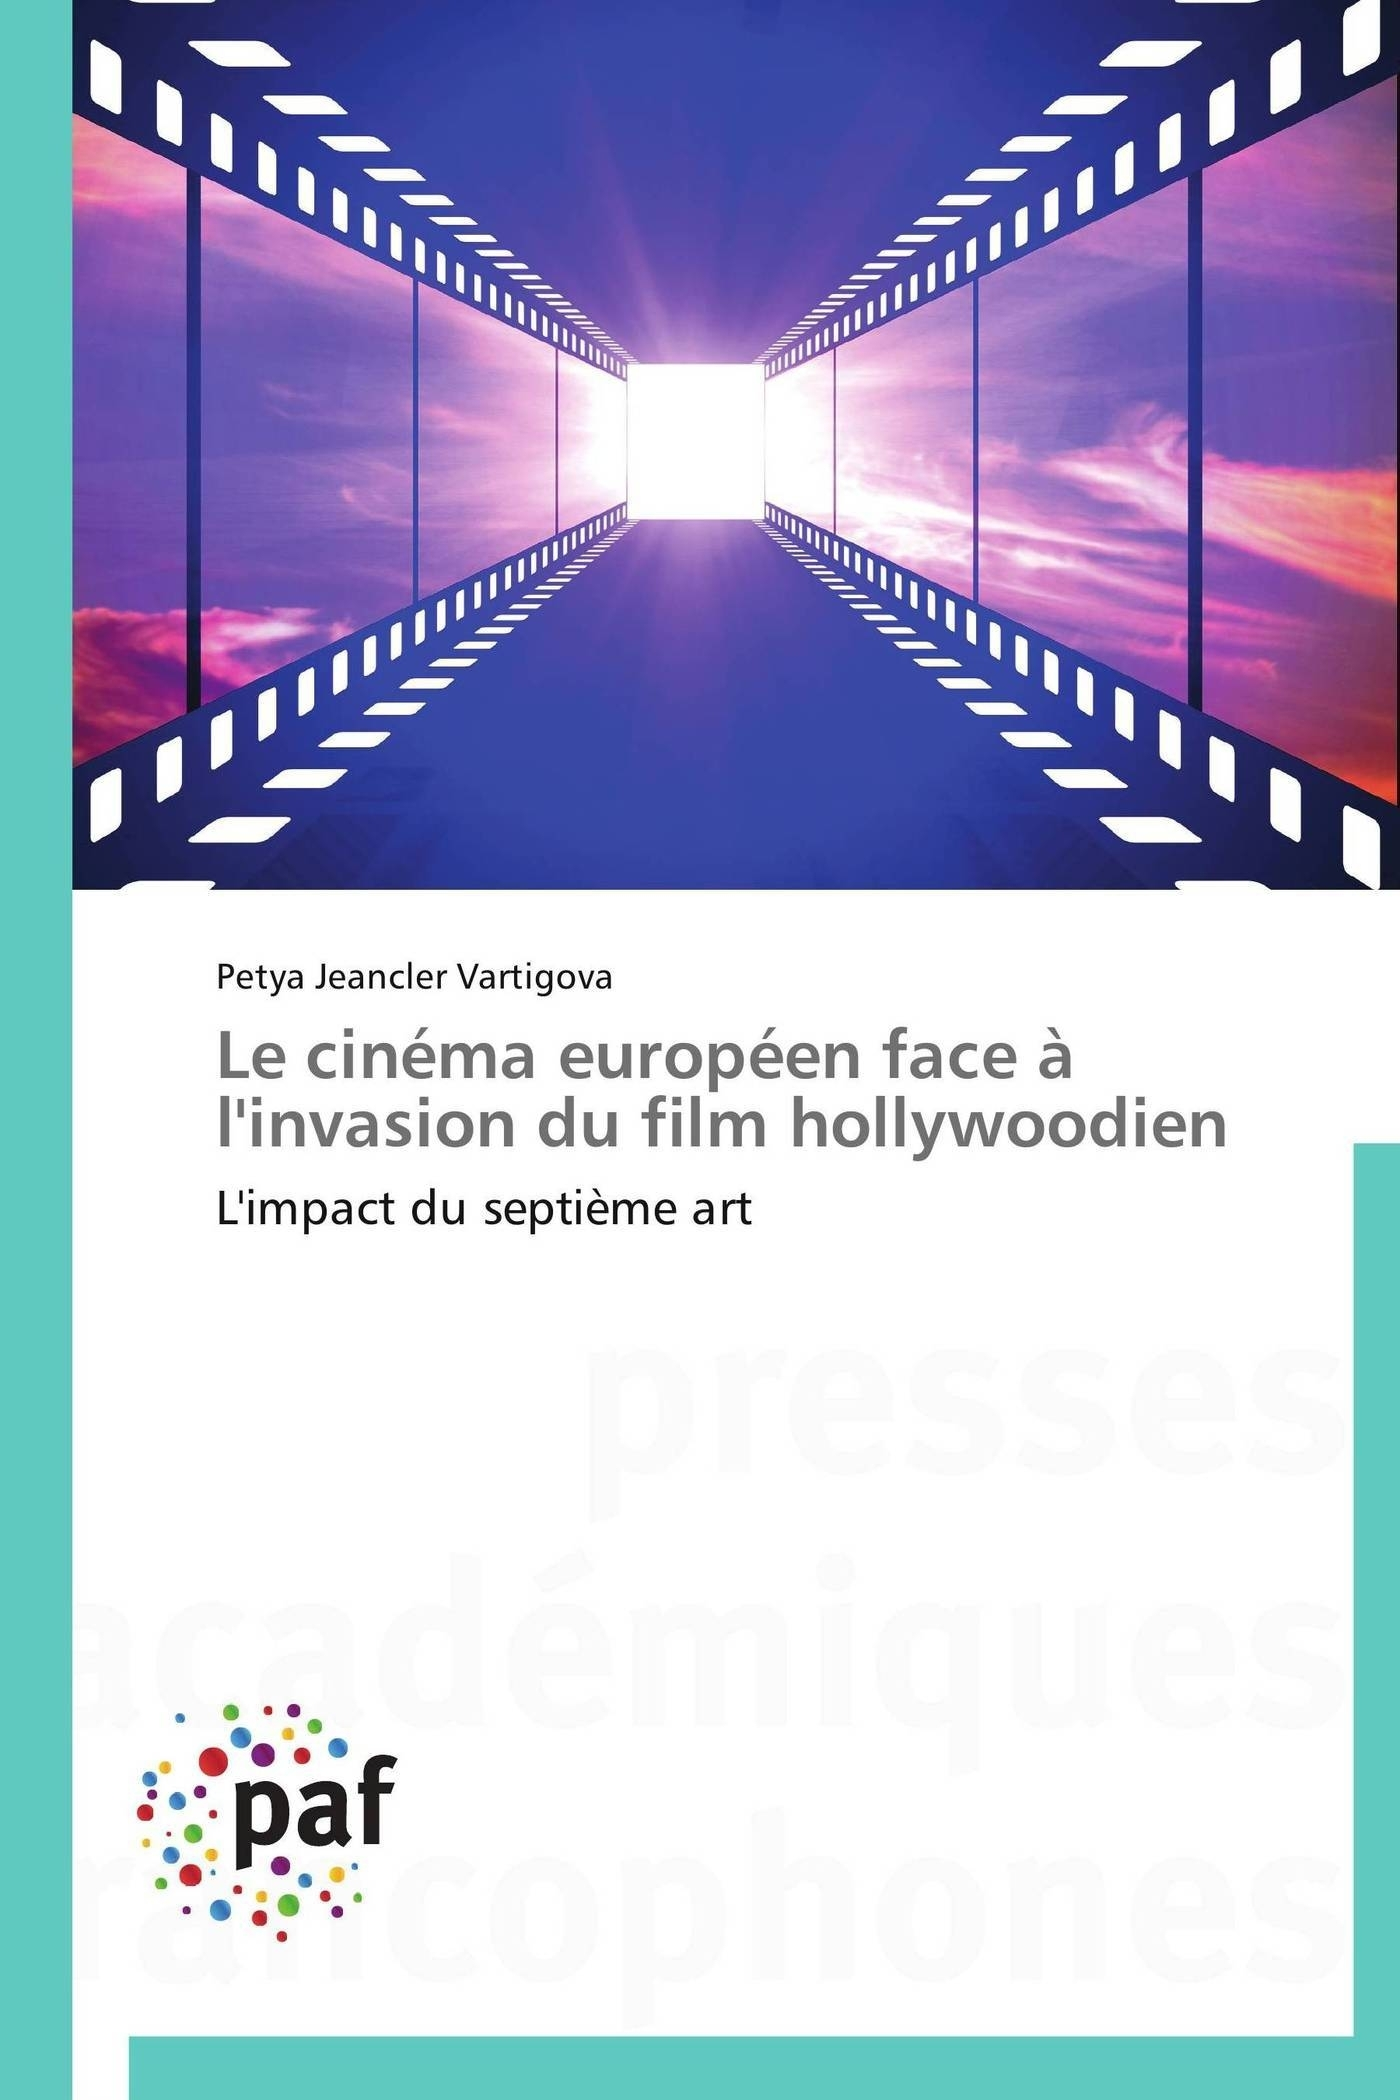 LE CINEMA EUROPEEN FACE A L'INVASION DU FILM HOLLYWOODIEN